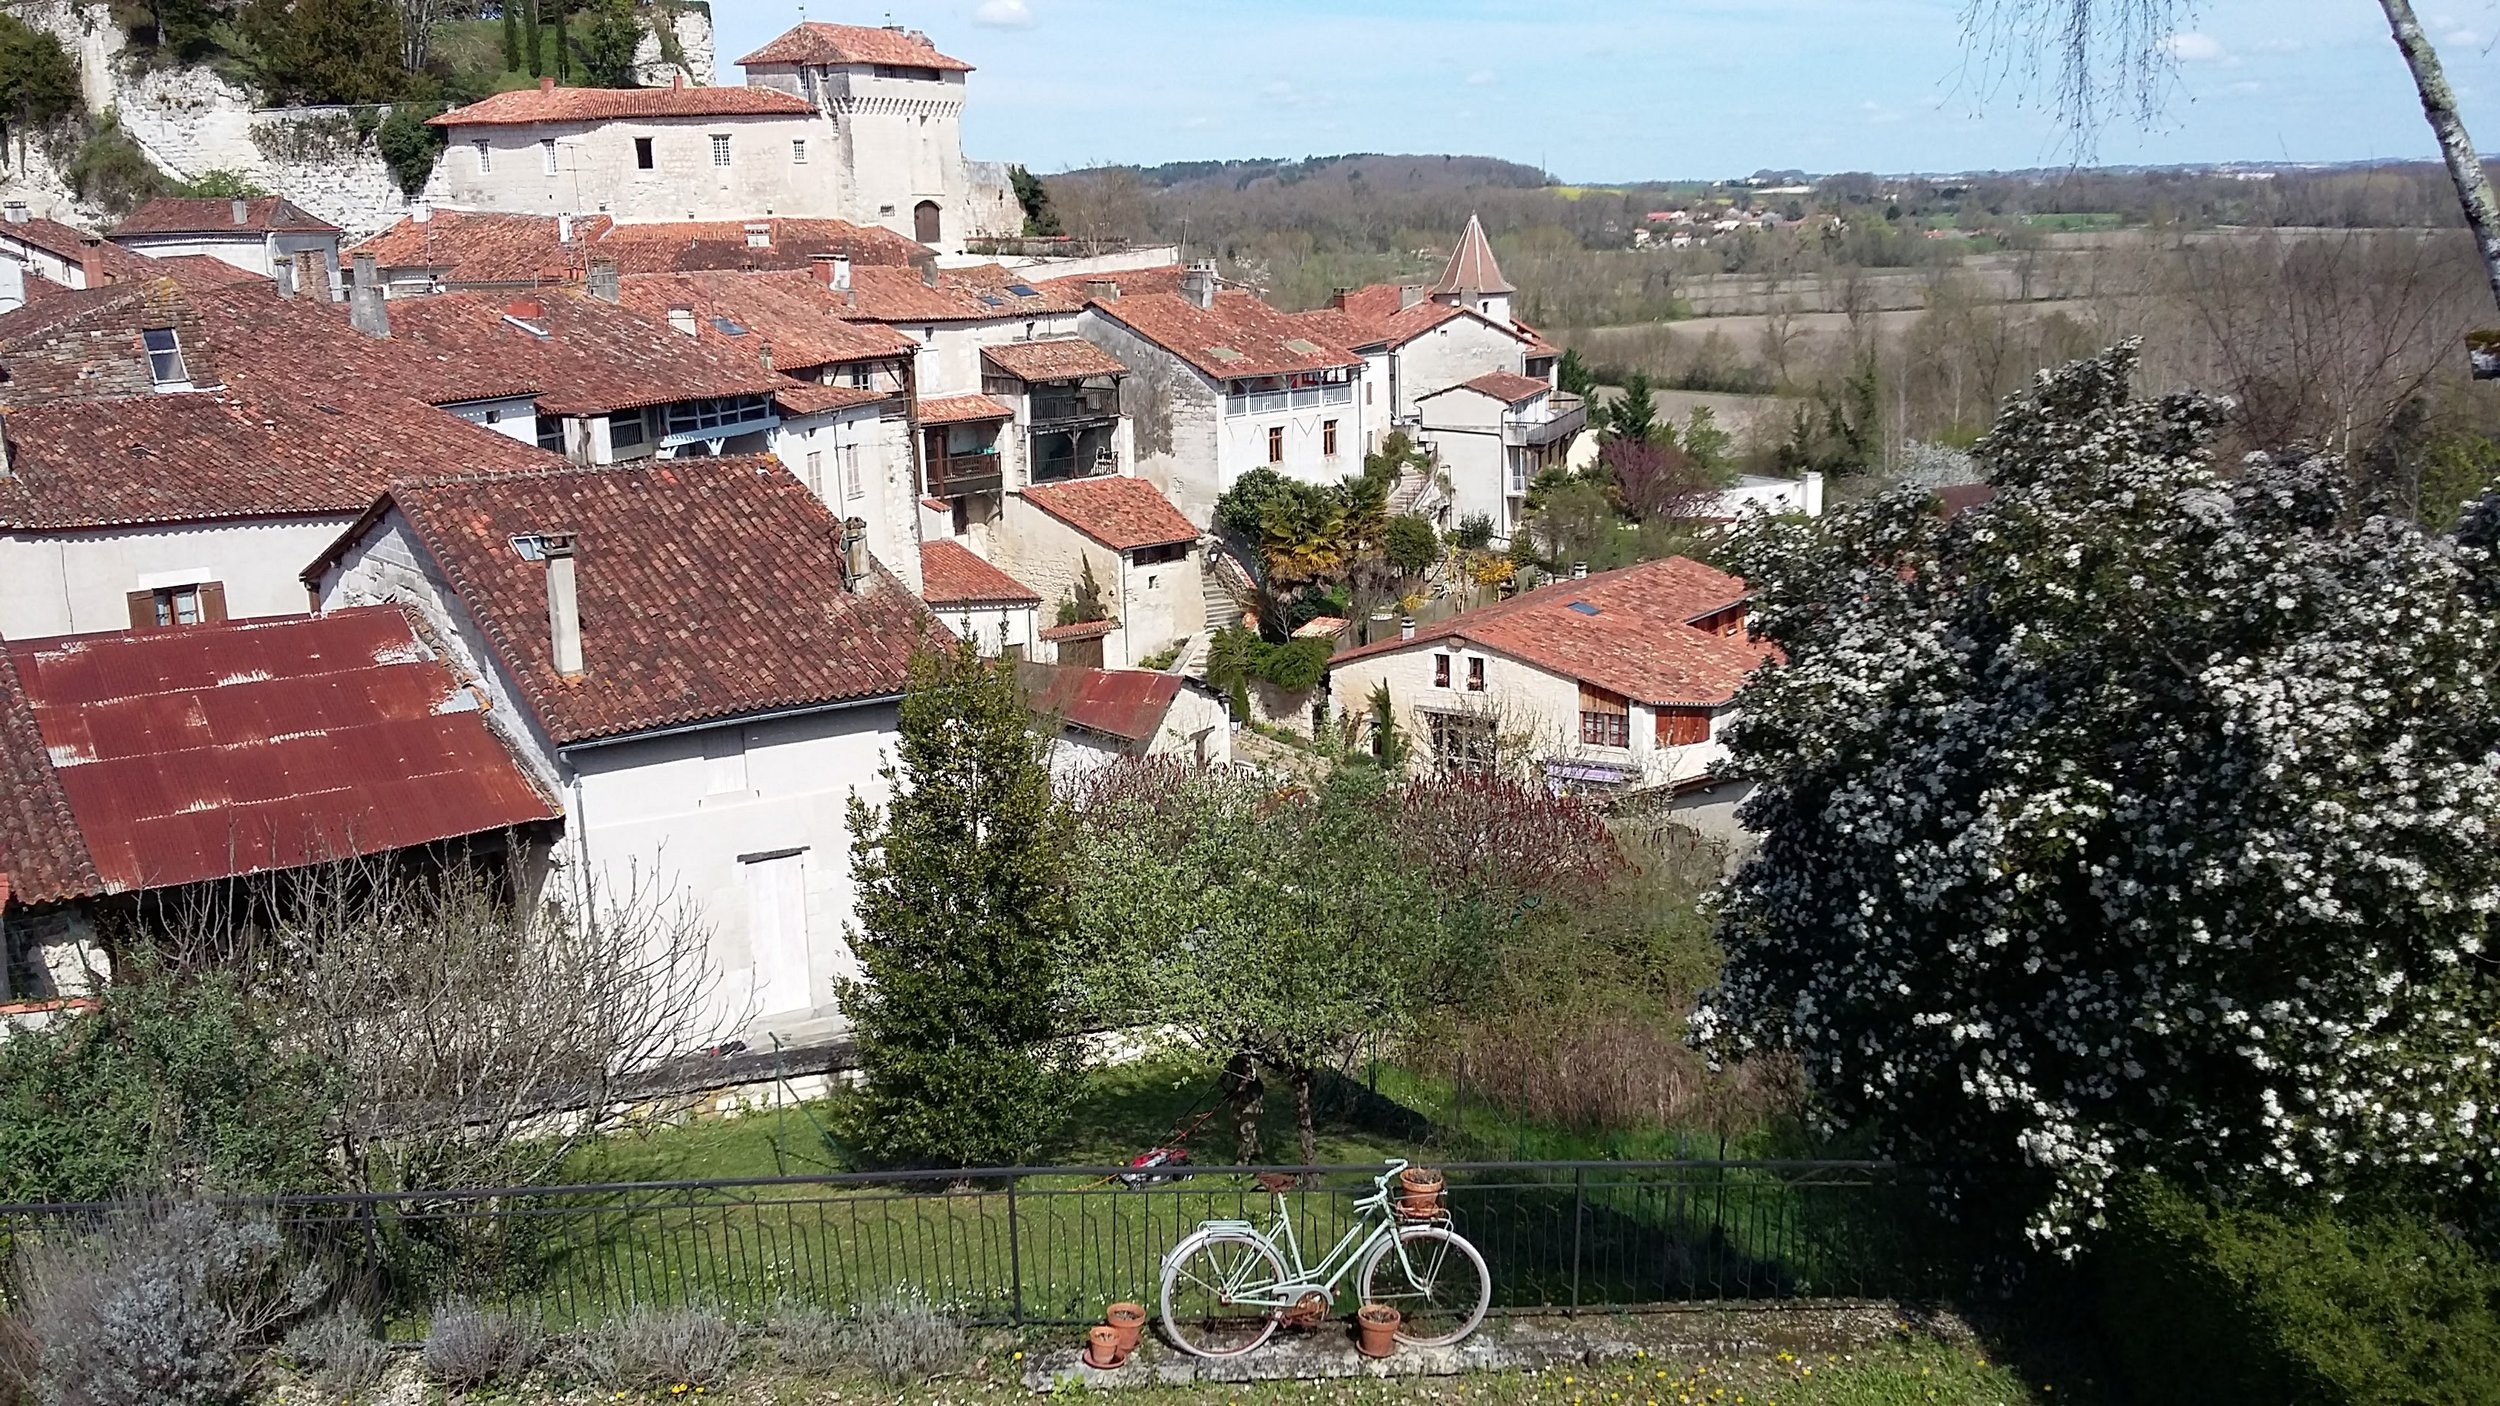 Aubeterre is the location for L'atelier des ecrivains - The Writers' Workshop, France